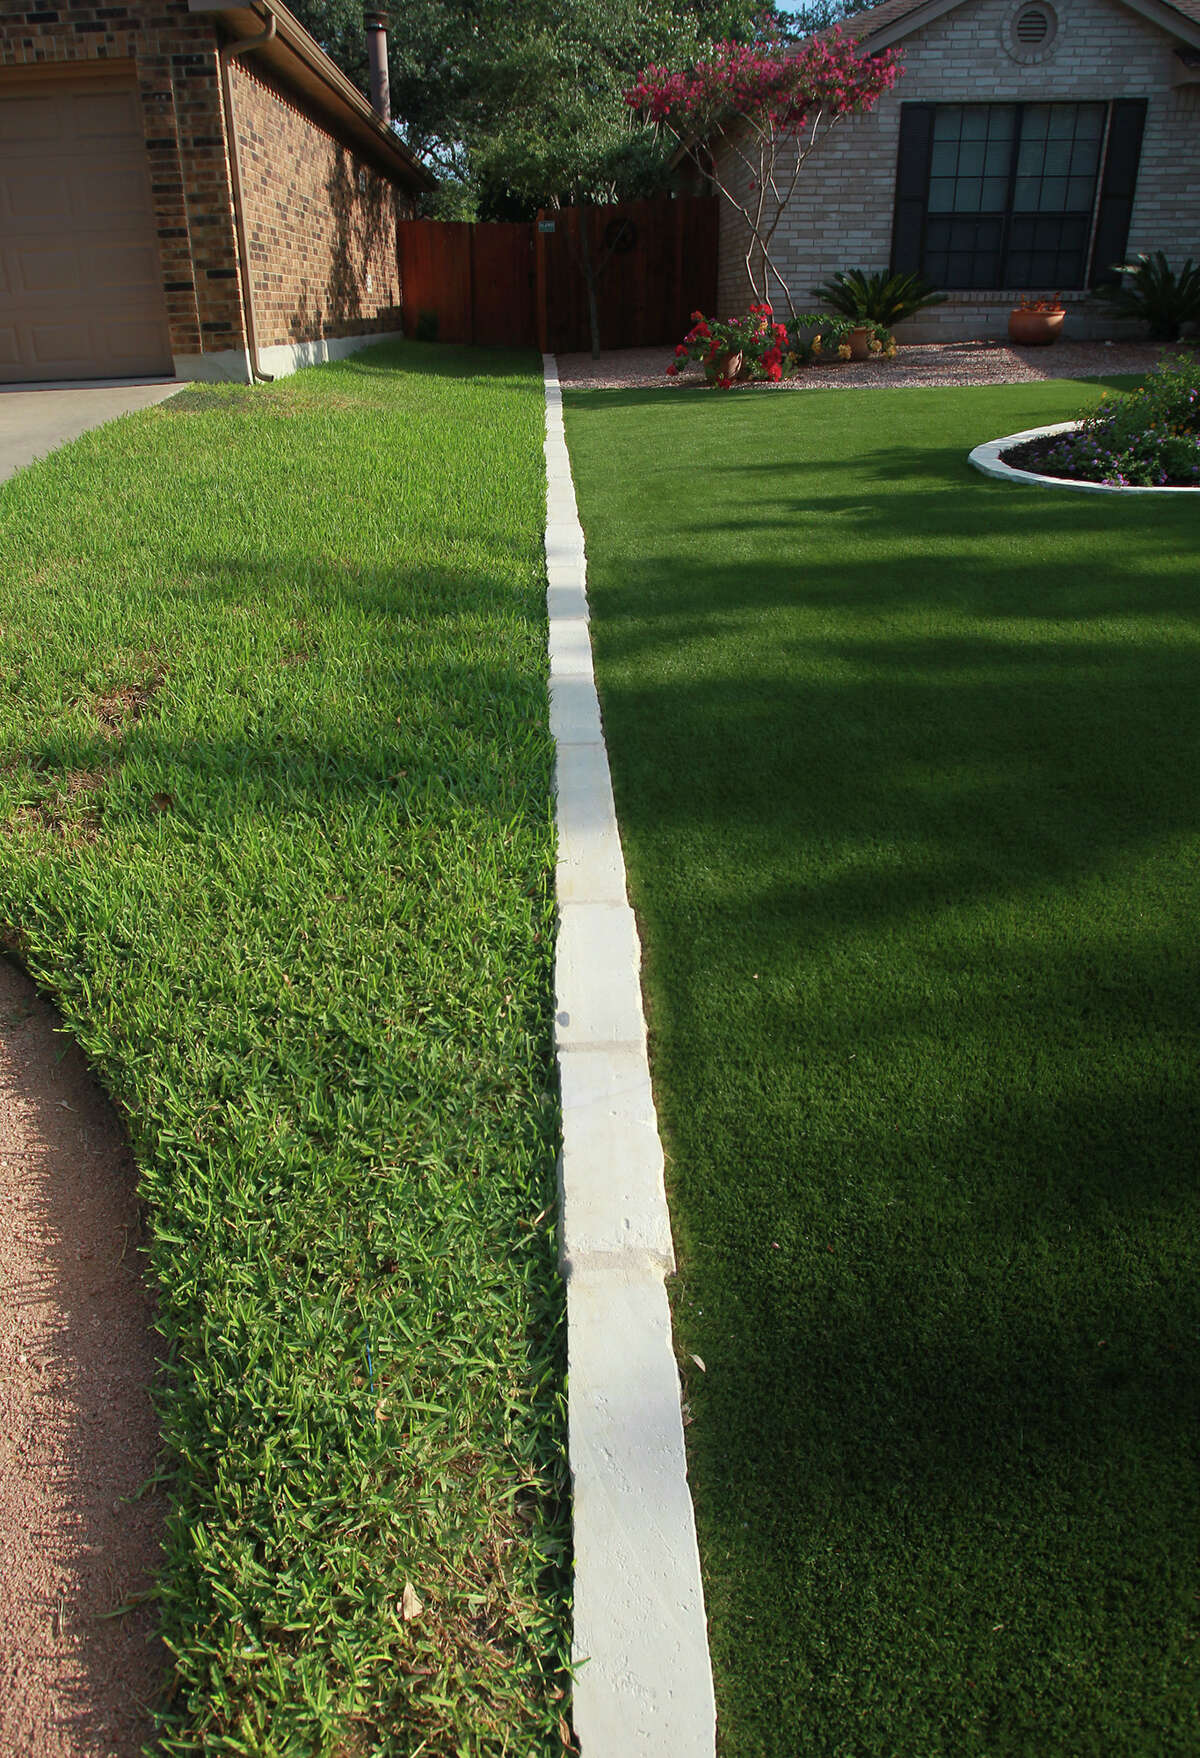 A limestone divider separates Bill Fenstermacher's artificial lawn (right) from his neighbor's St. Augustine lawn (left). Fenstermacher's homeowner association in Villages of Westcreek approves synthetic grass because of water savings.